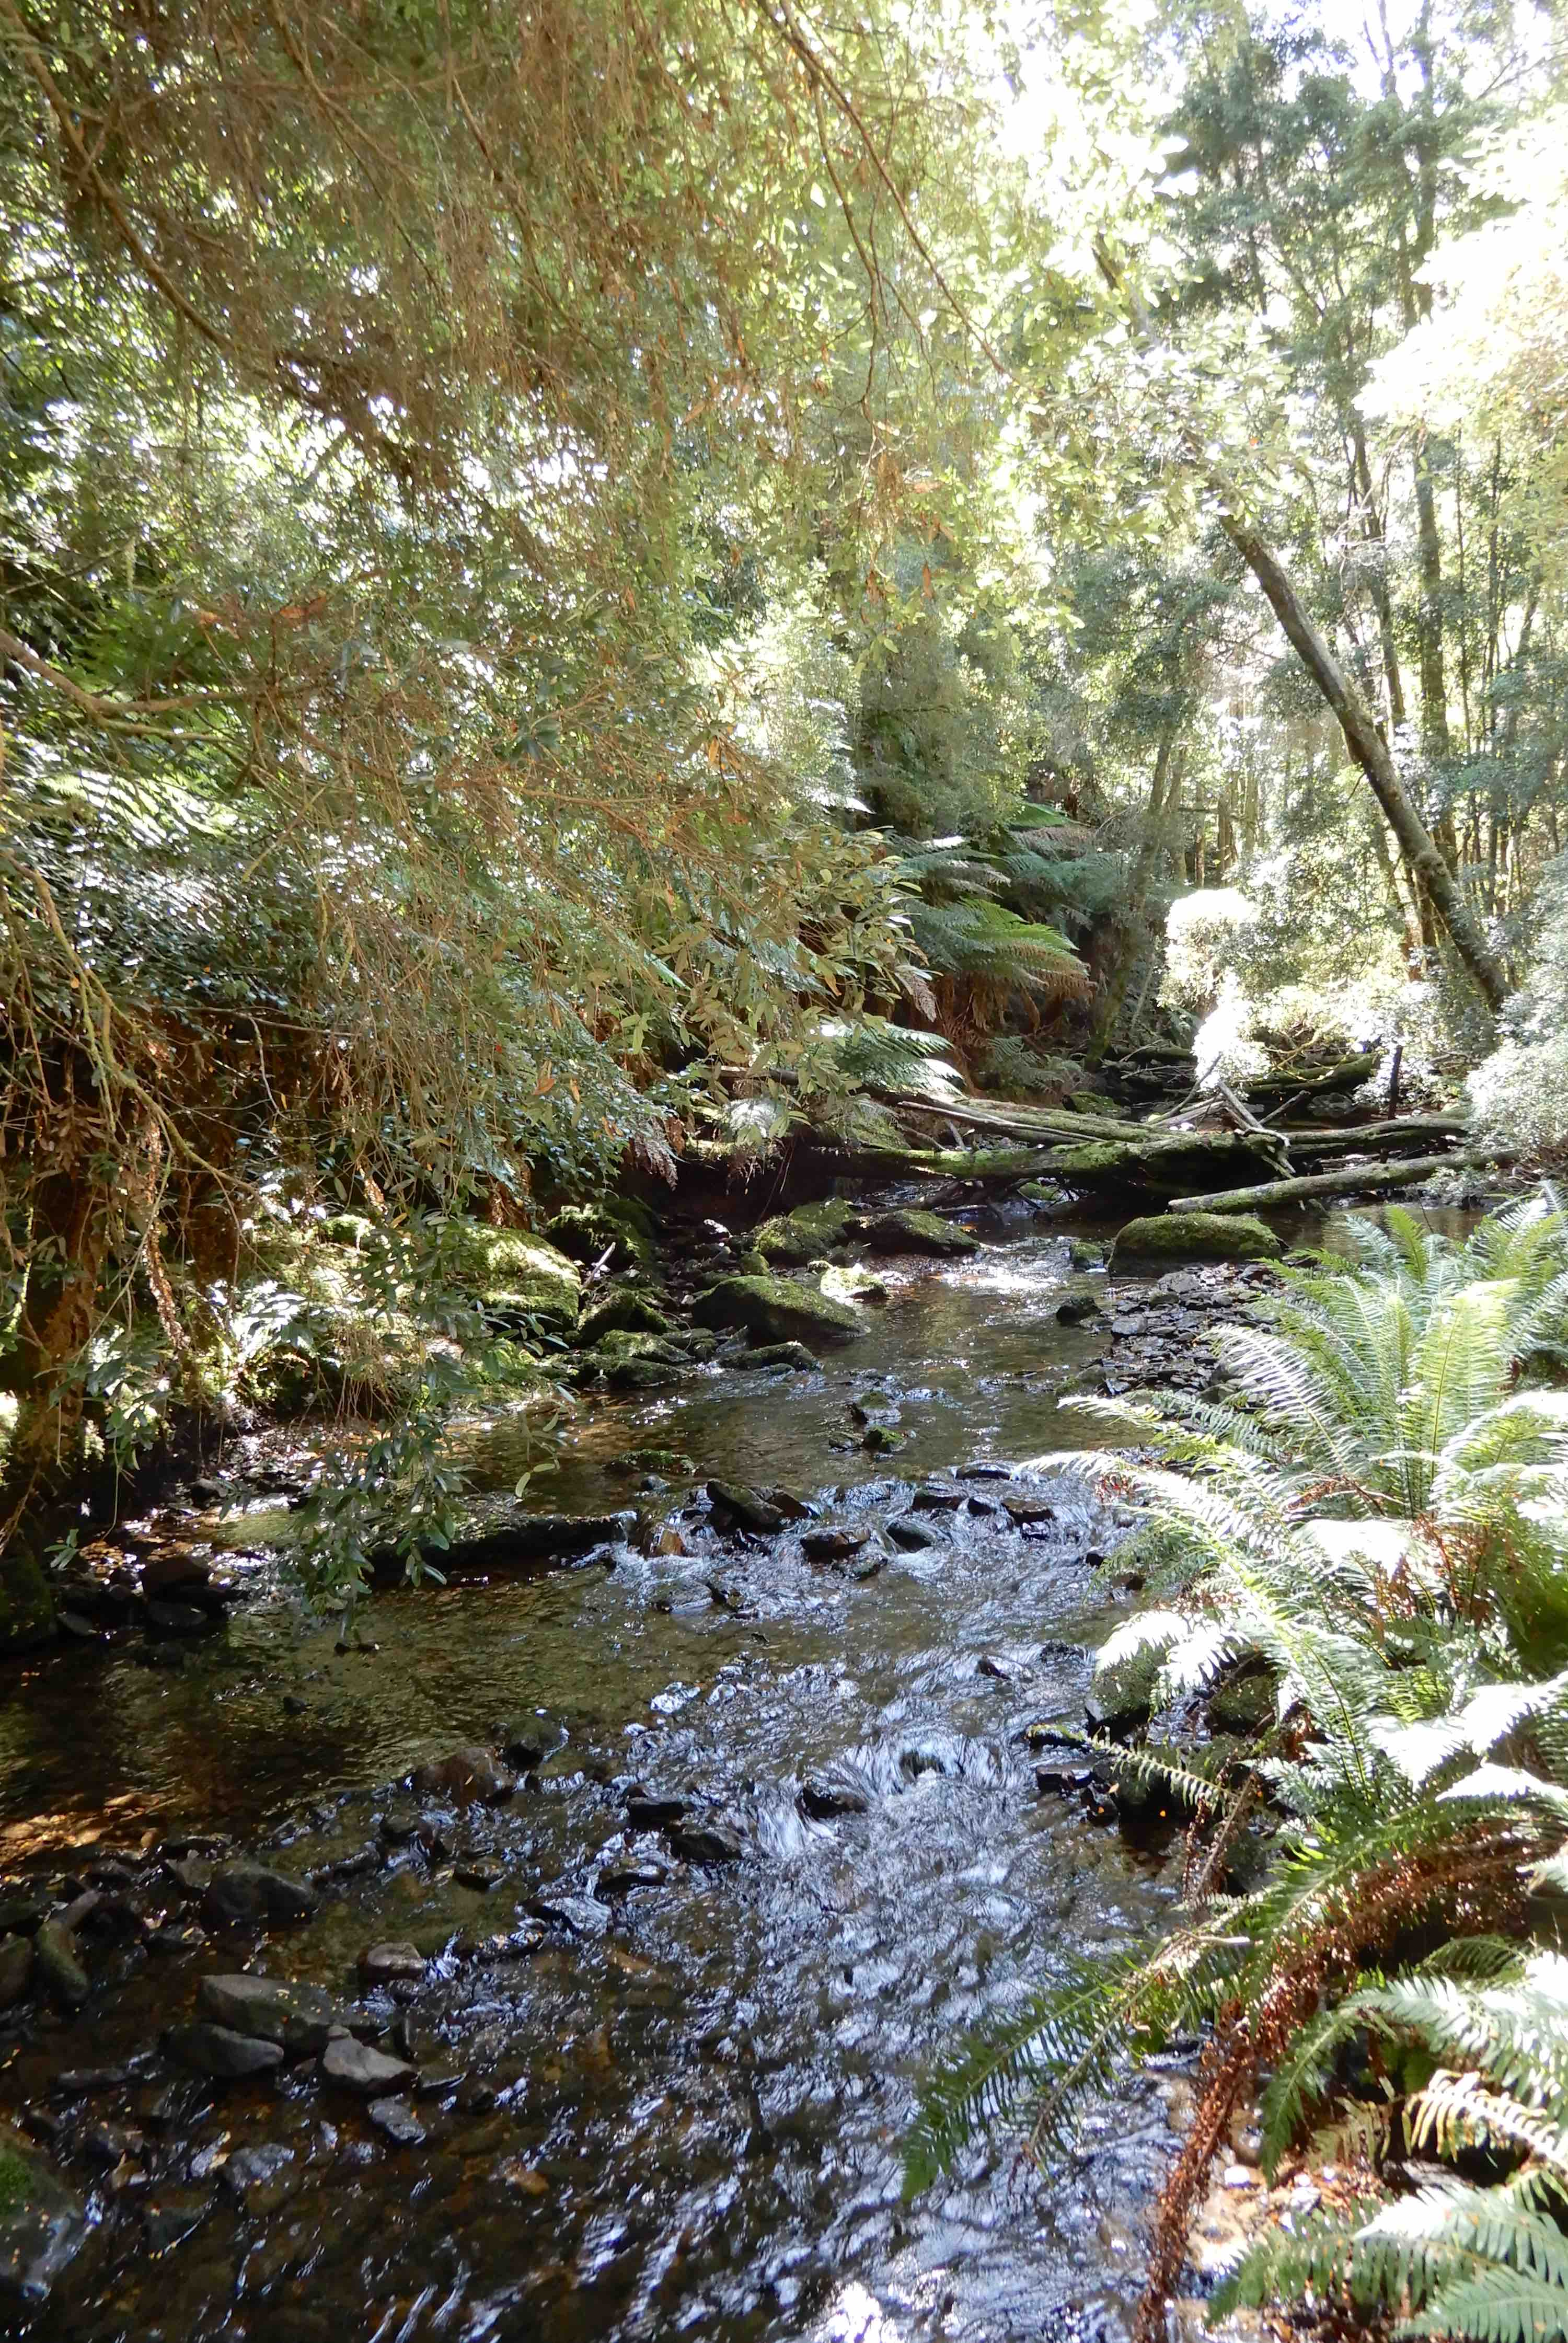 3.Nelson River